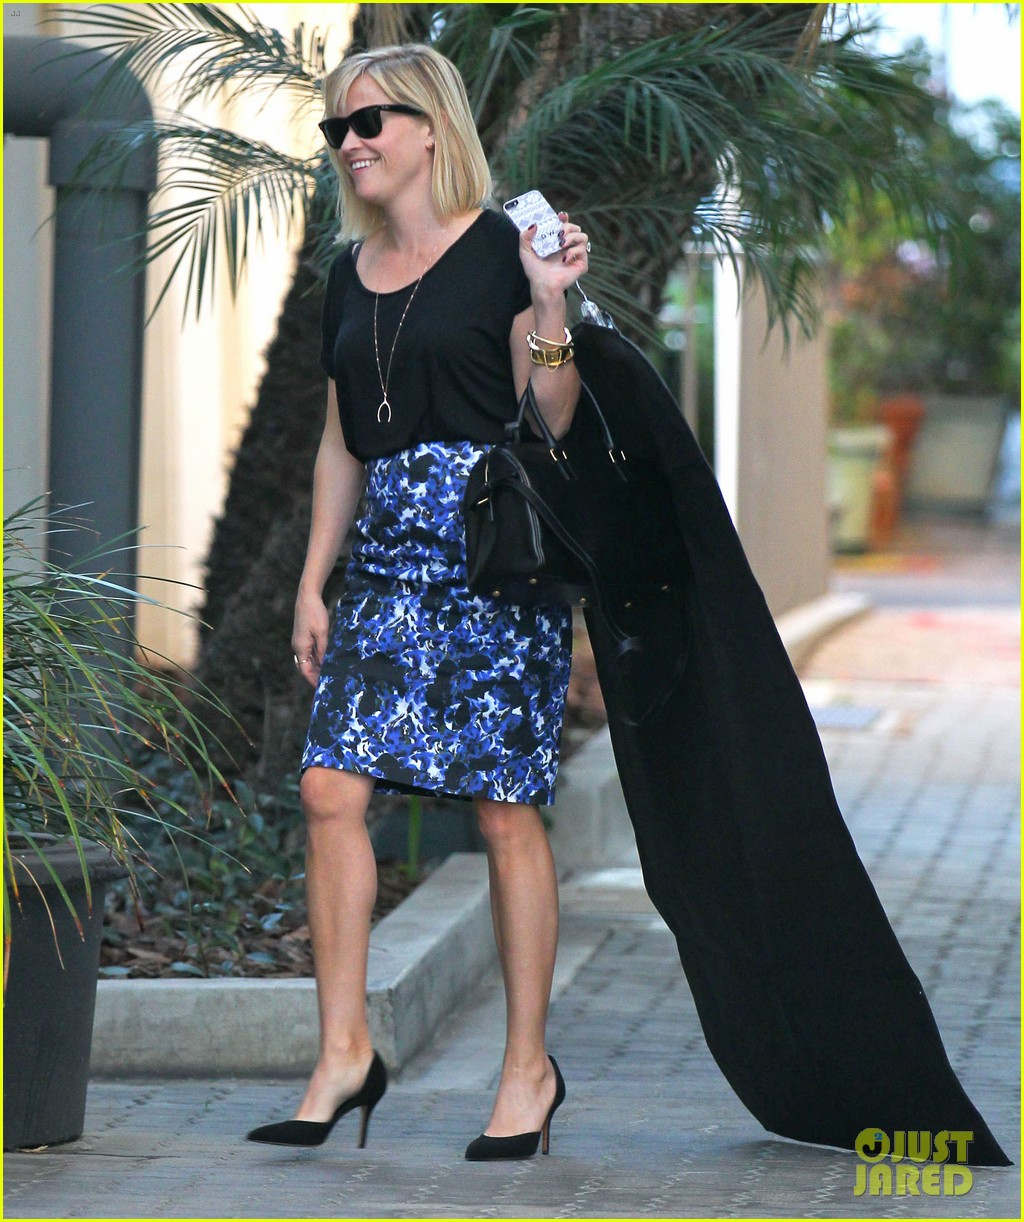 reese witherspoon steps out after the intern news 103033538